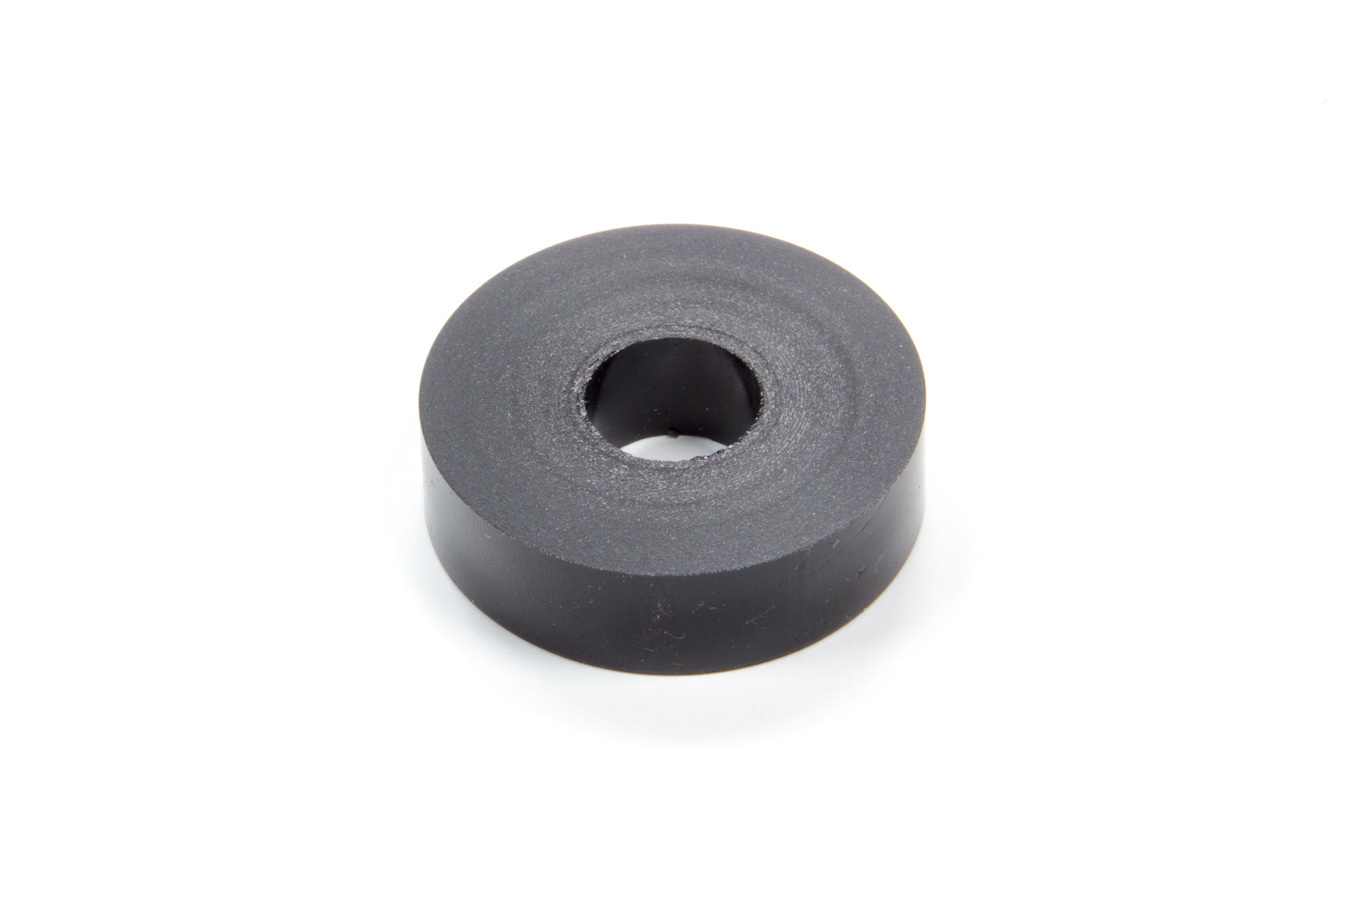 RE Suspension RE-BR-5153-150 Bump Stop Puck, Apollo, 1.875 in OD, 5/8 in ID, 1/2 in Tall, 50 Durometer, Rubber, Black, Each